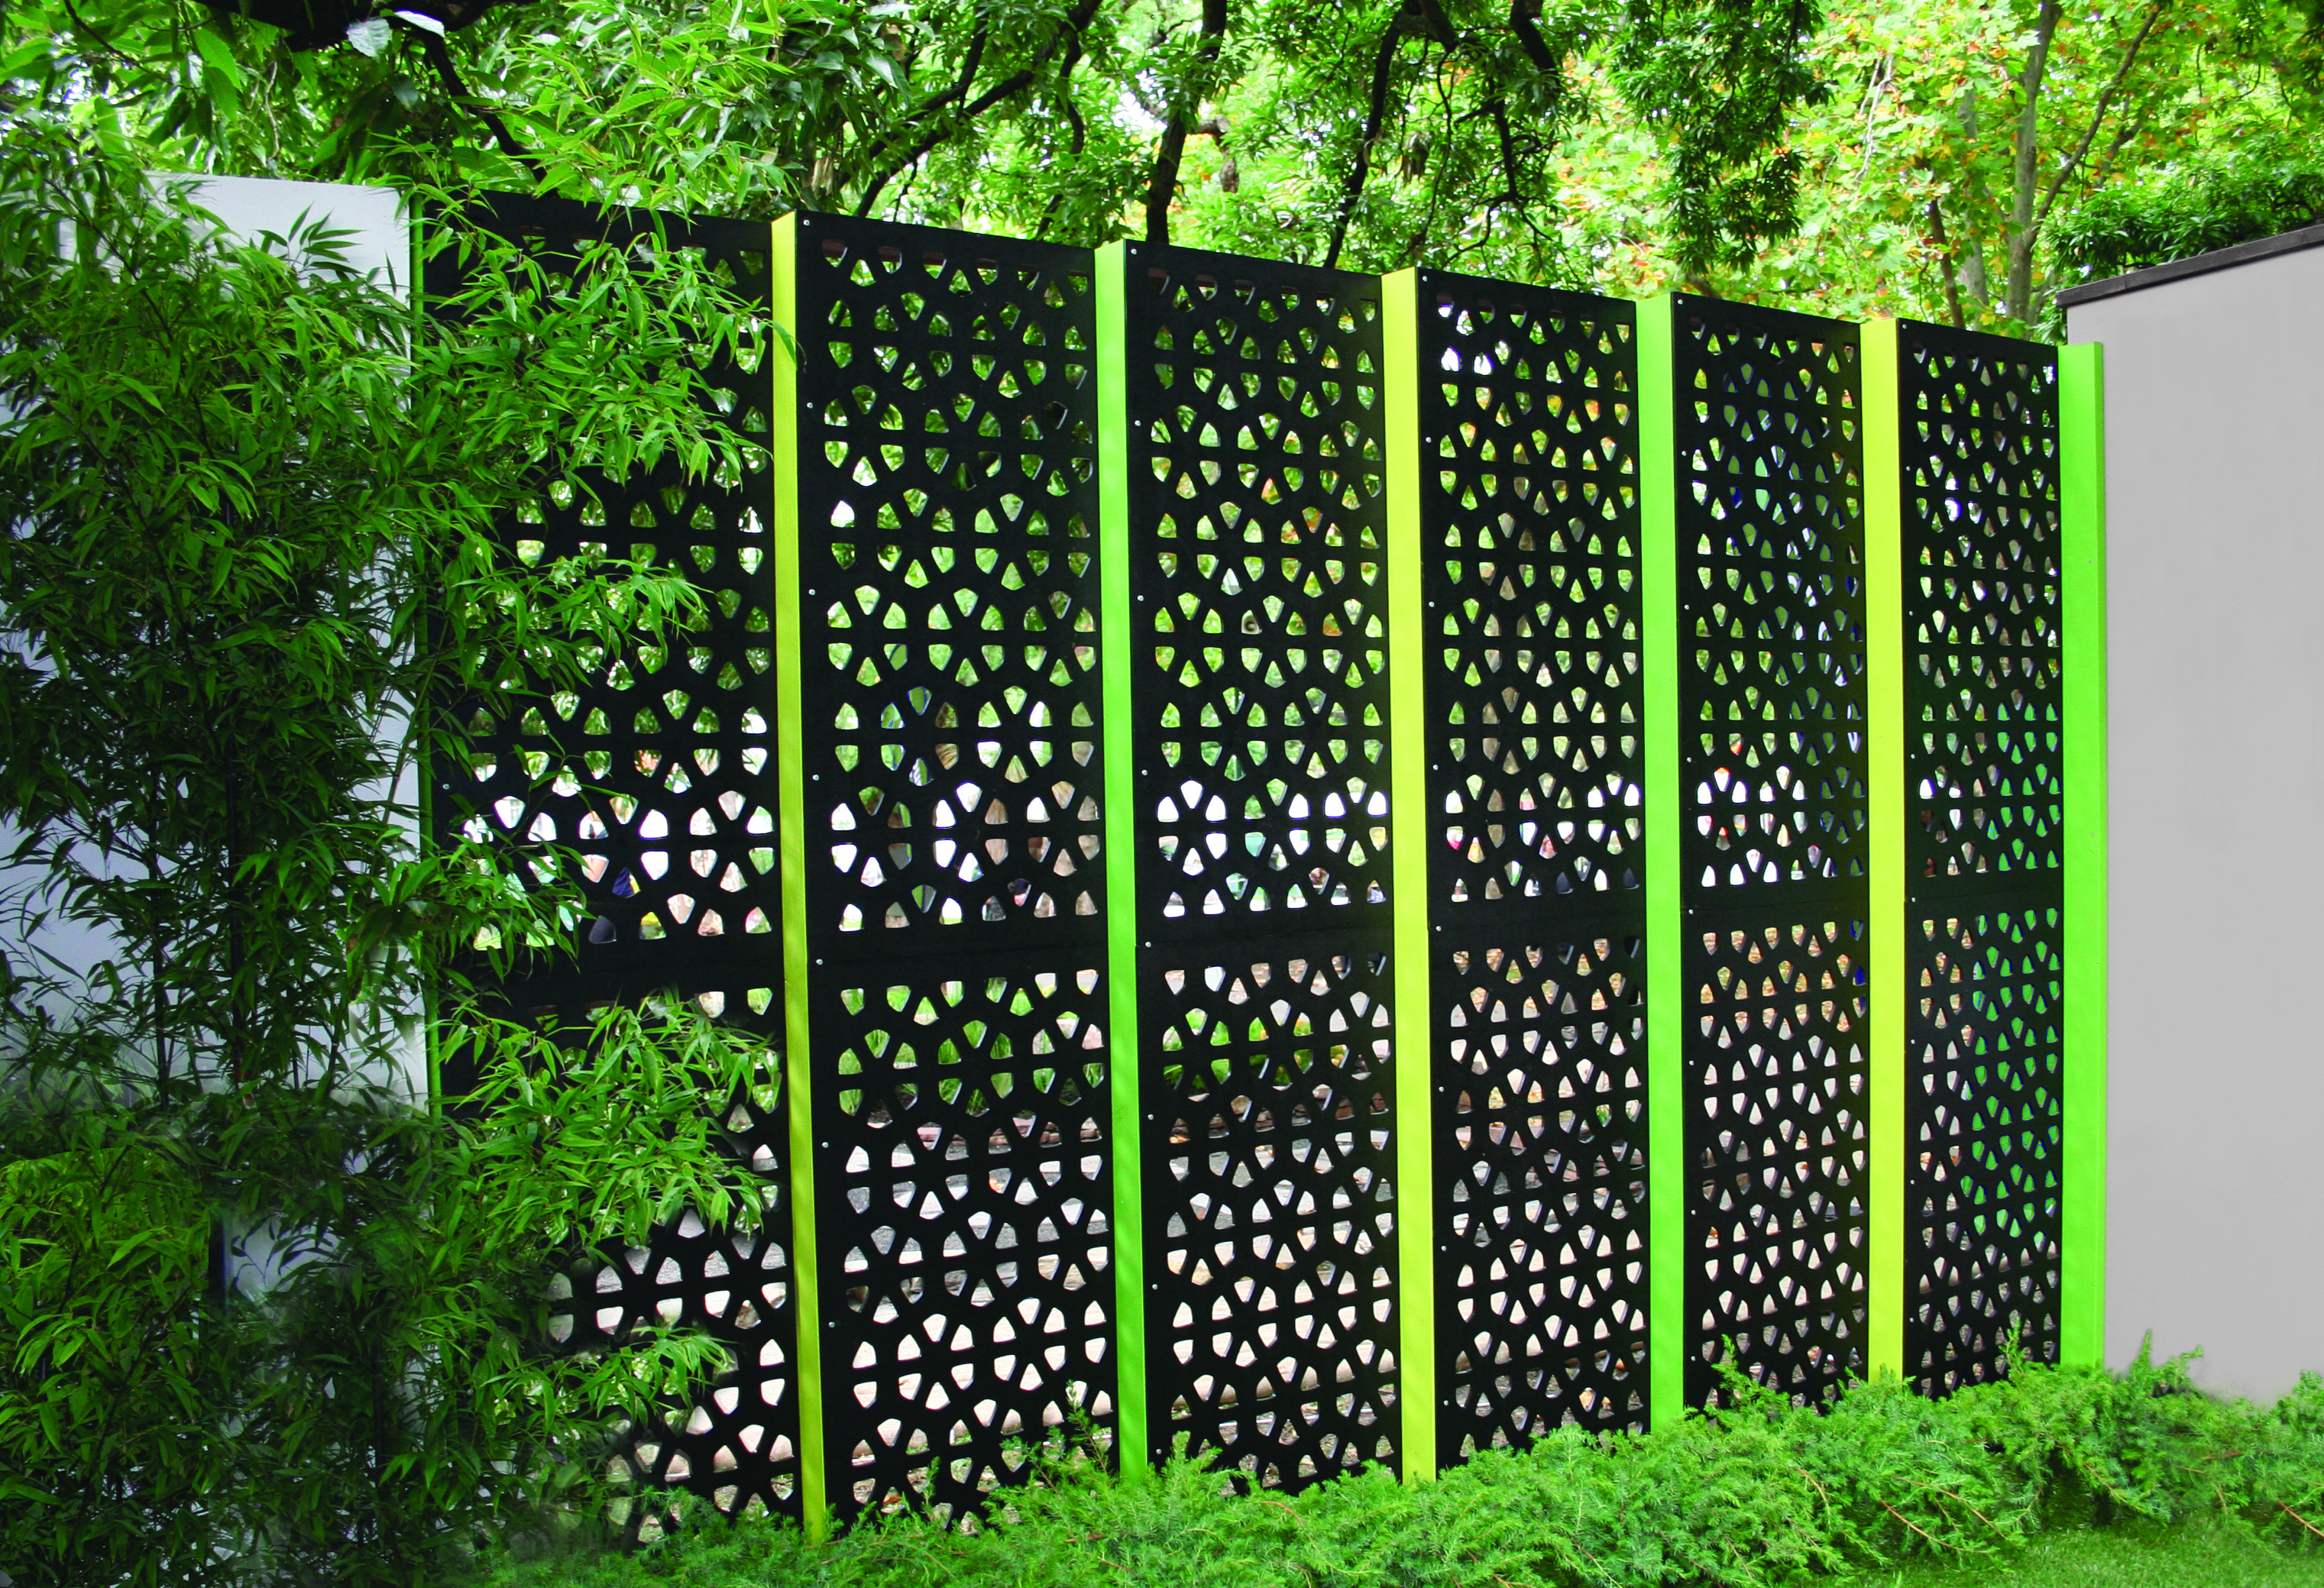 OSAKA 80% - Outdeco Outdoor Decorative Screen Panels